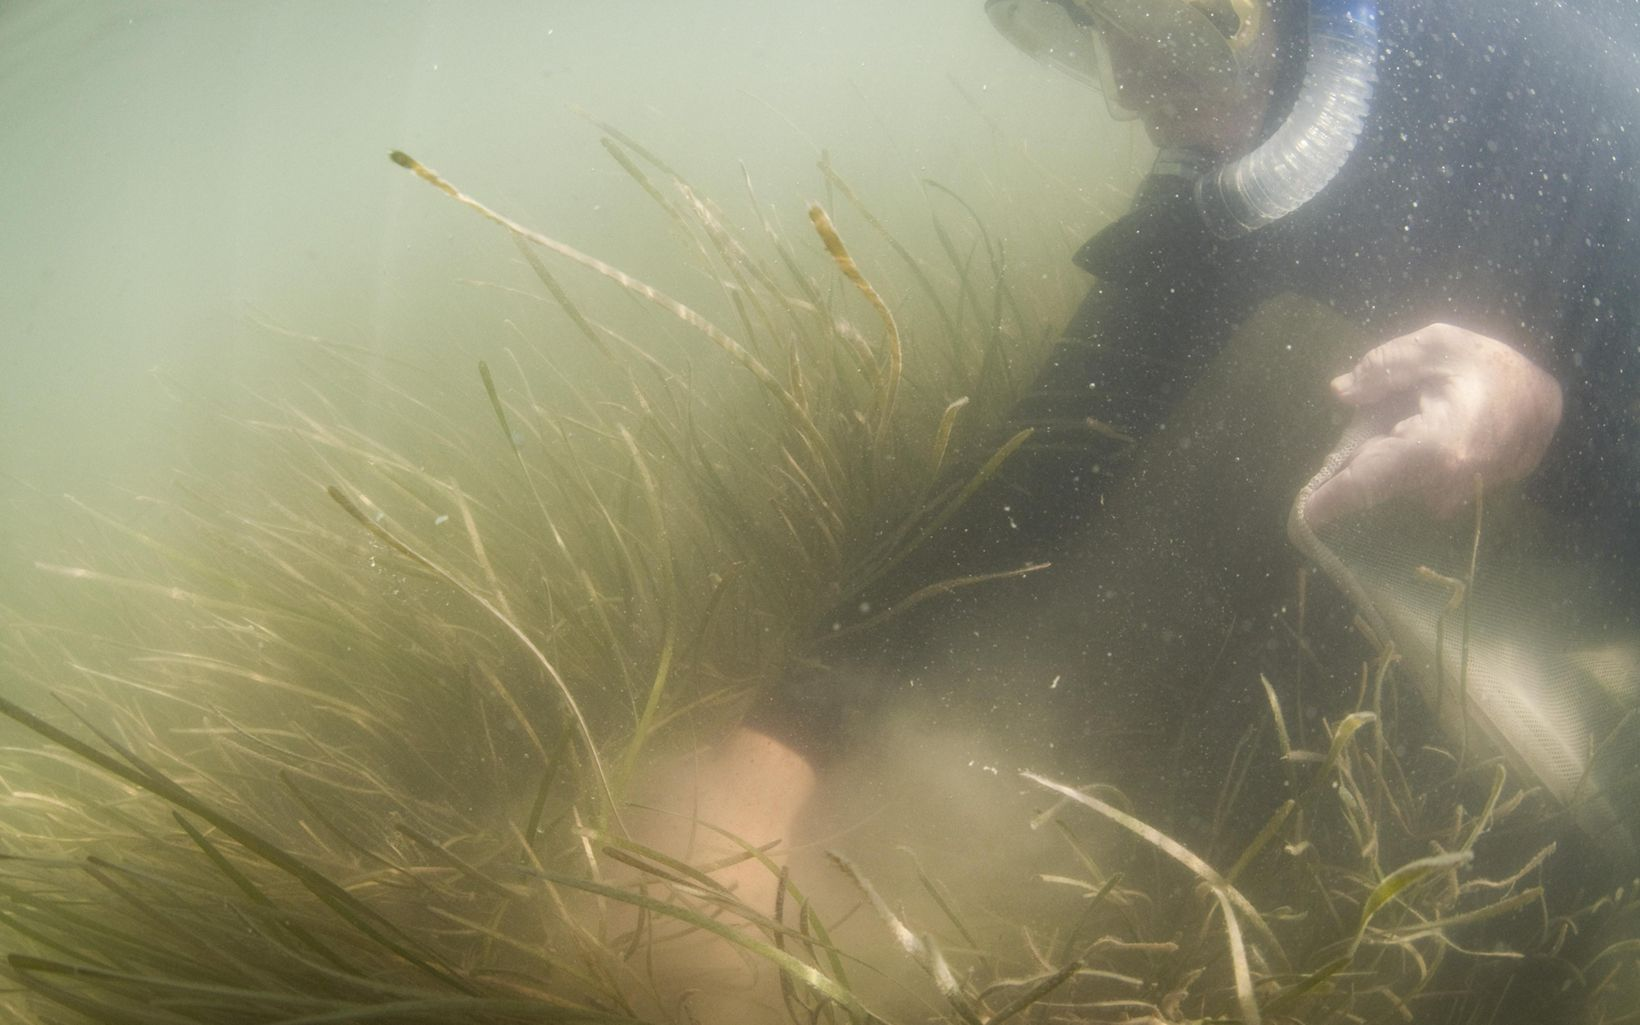 A snorkler collects eelgrass shoots underwater.